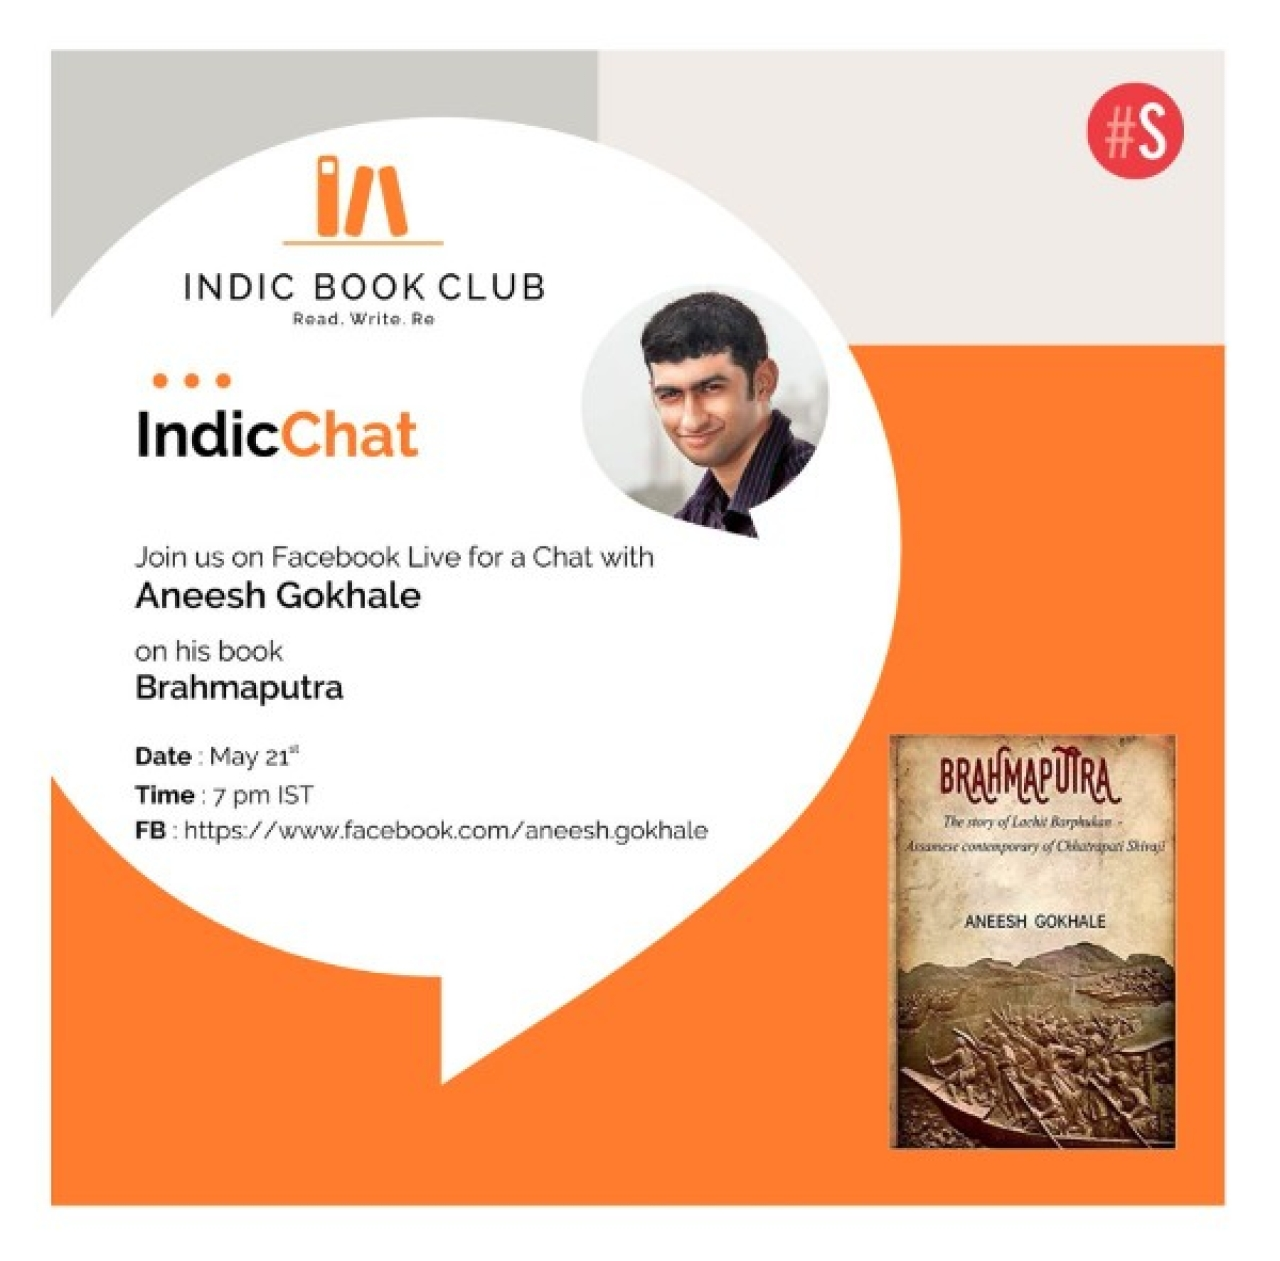 IndicChat with Aneesh Gokhale